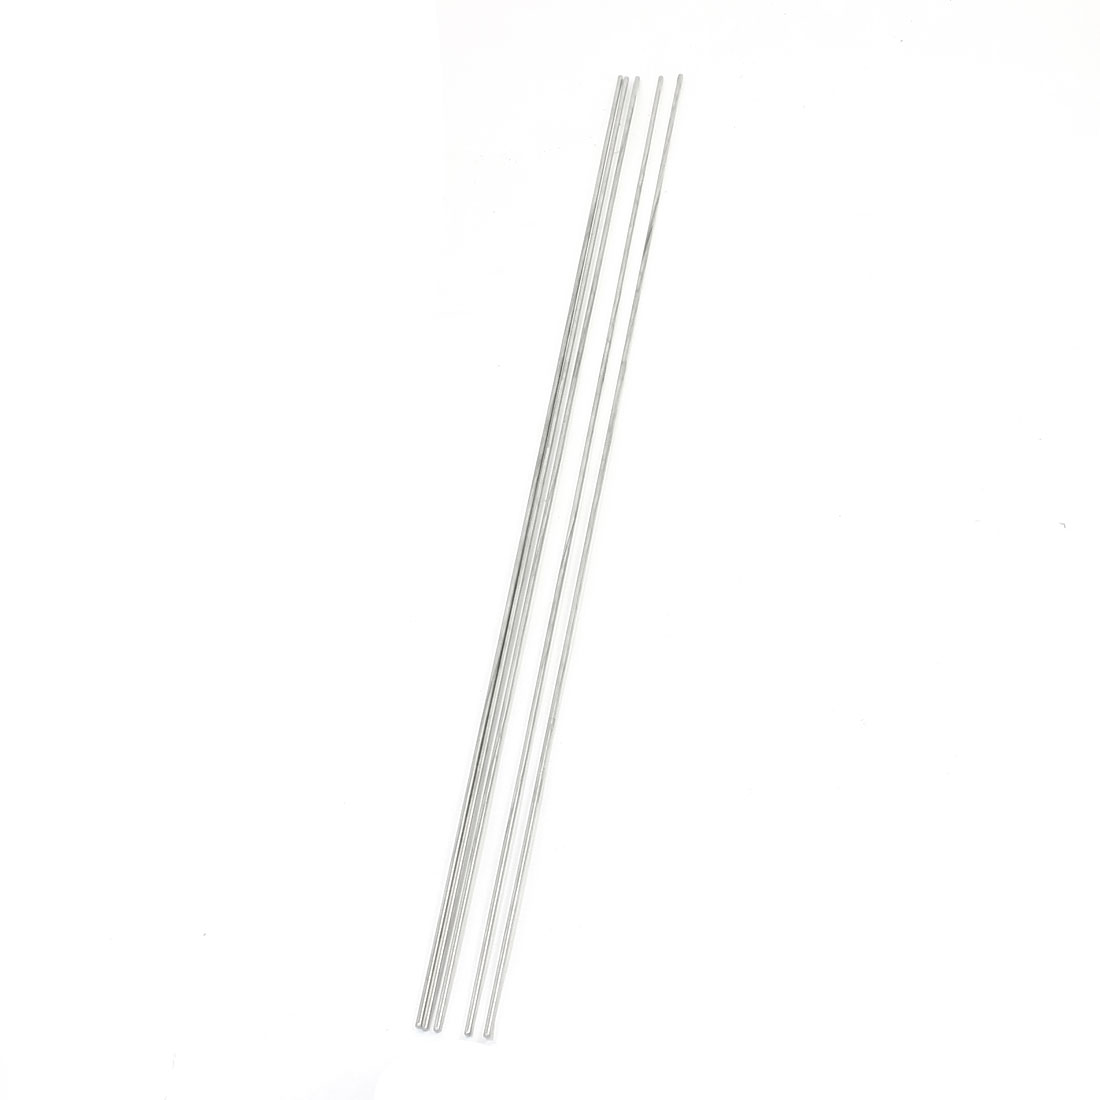 RC Model Airplane DIY Silver Tone Stainless Steel Round Rod Shaft Bar Axle 500mm x 2.5mm 5Pcs